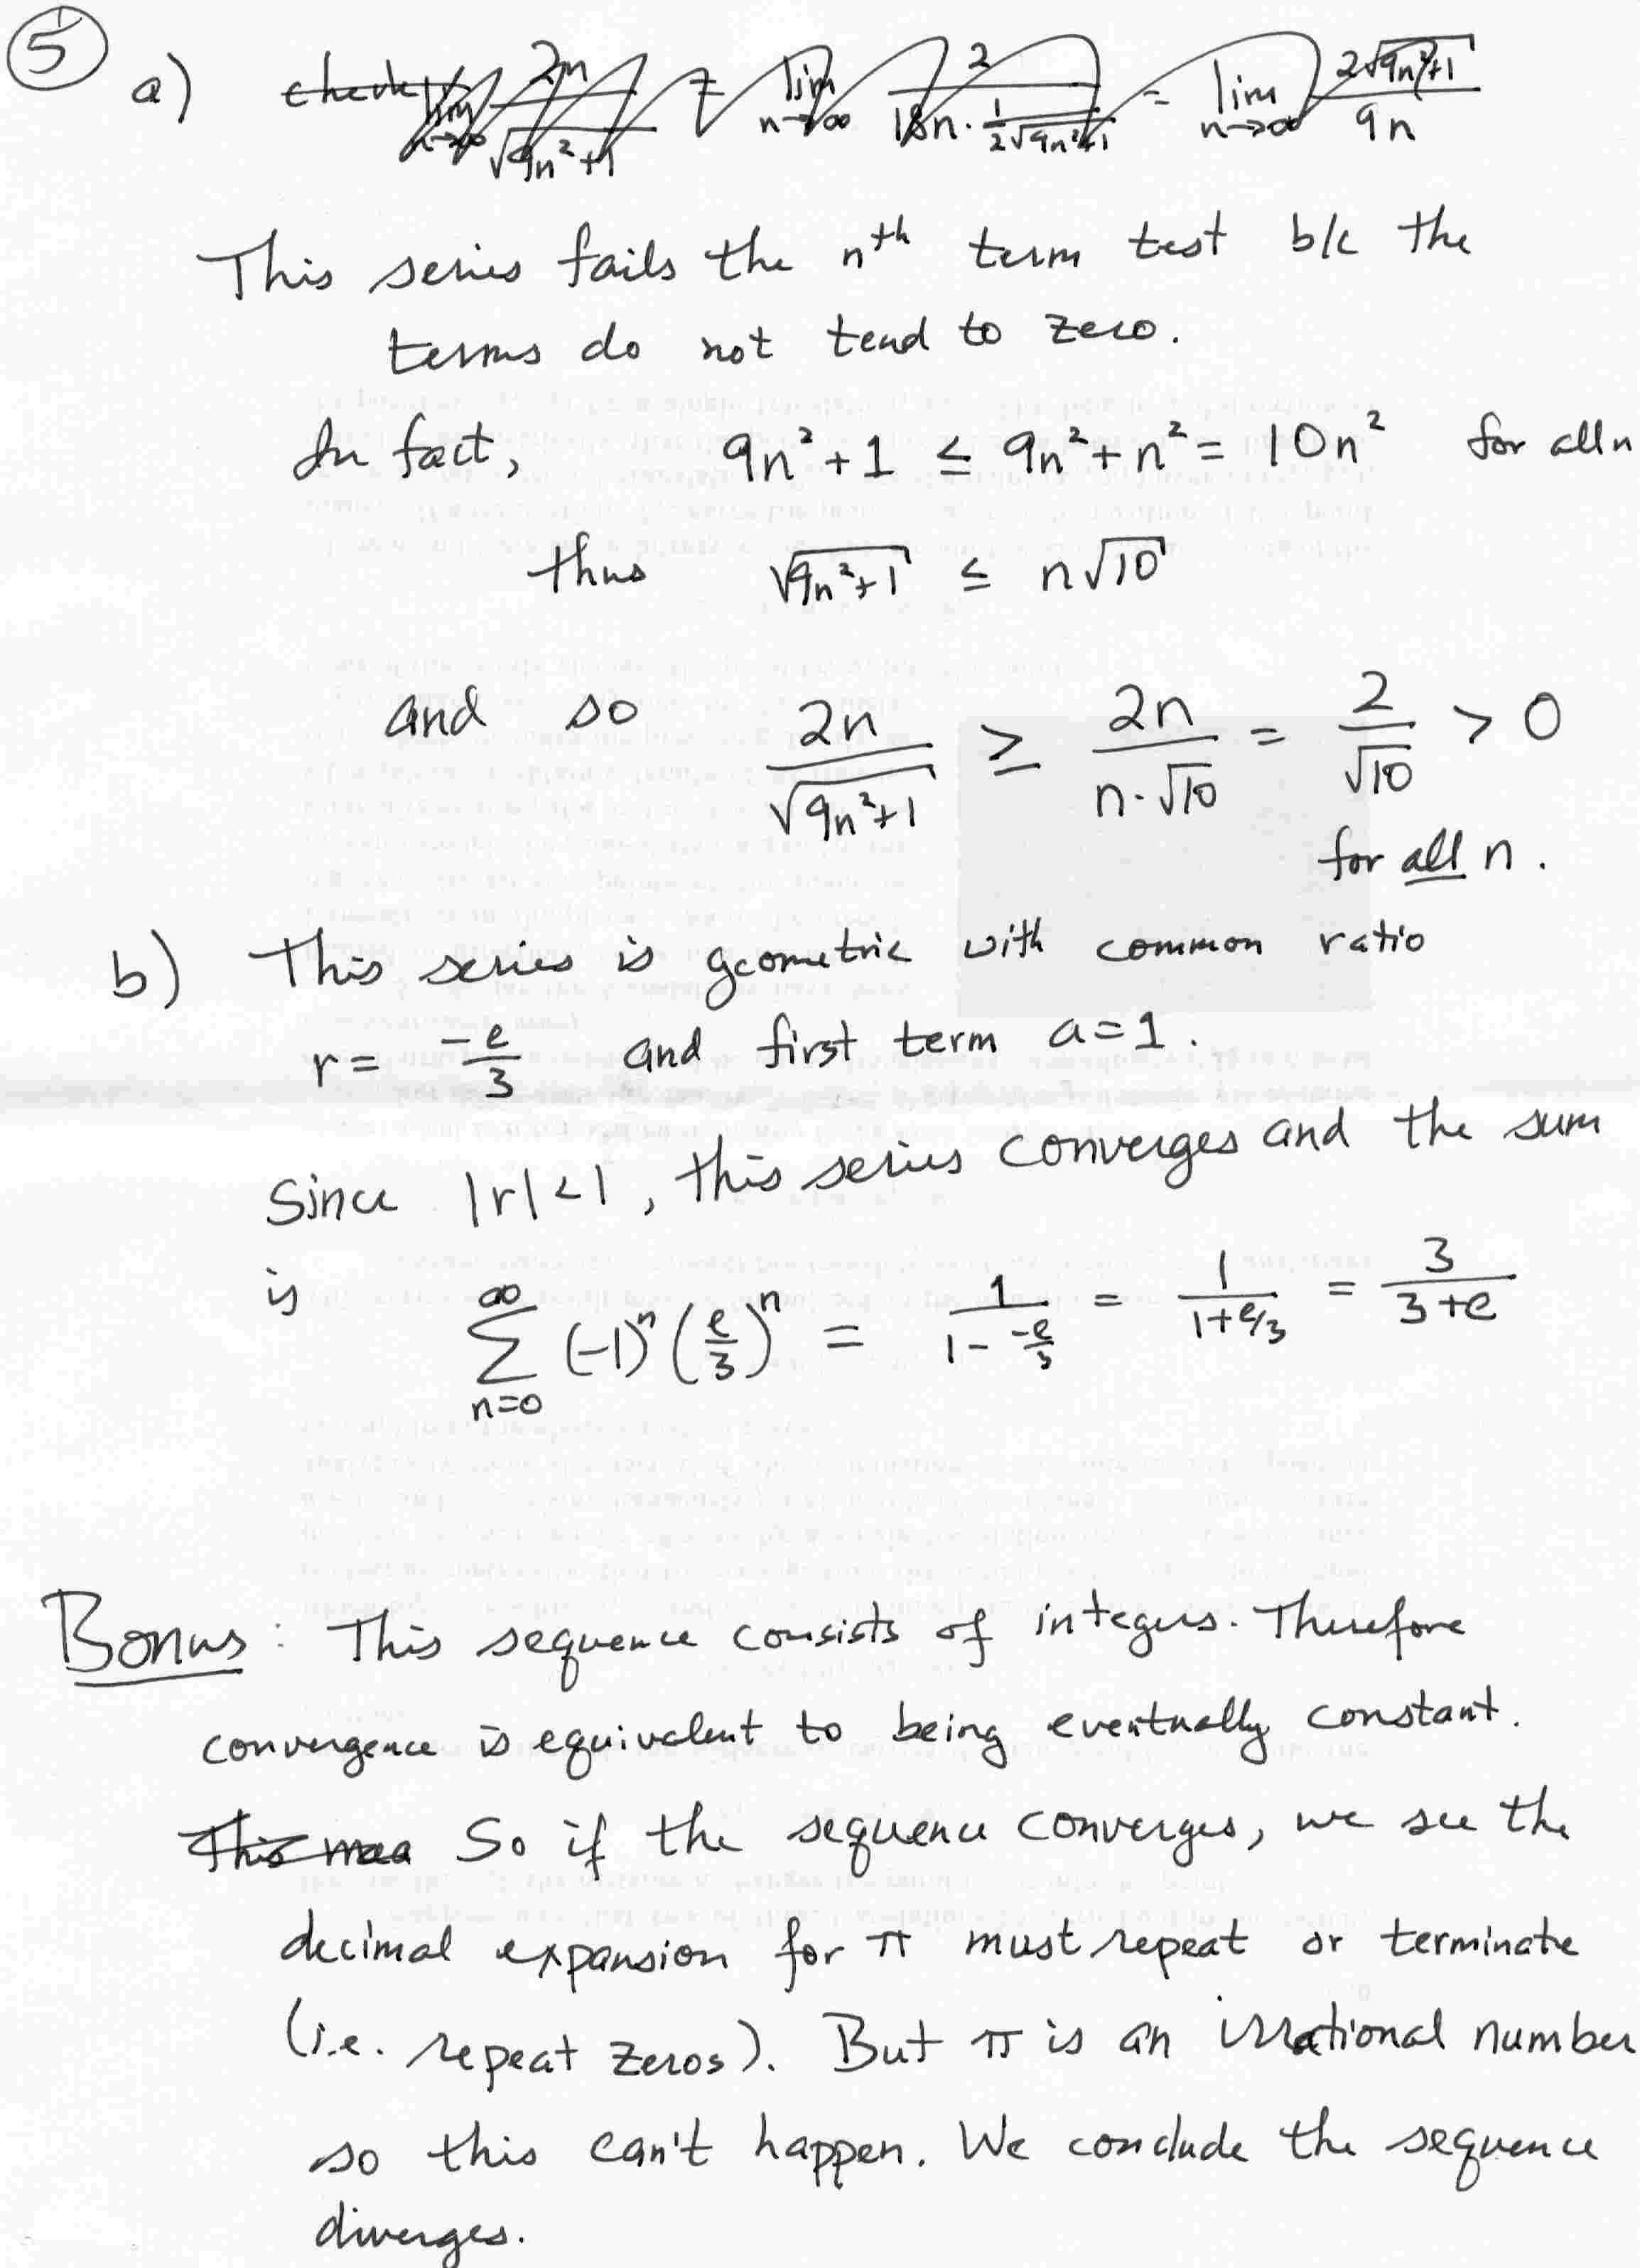 Math 102 sections 002 and 003, Spring 2004